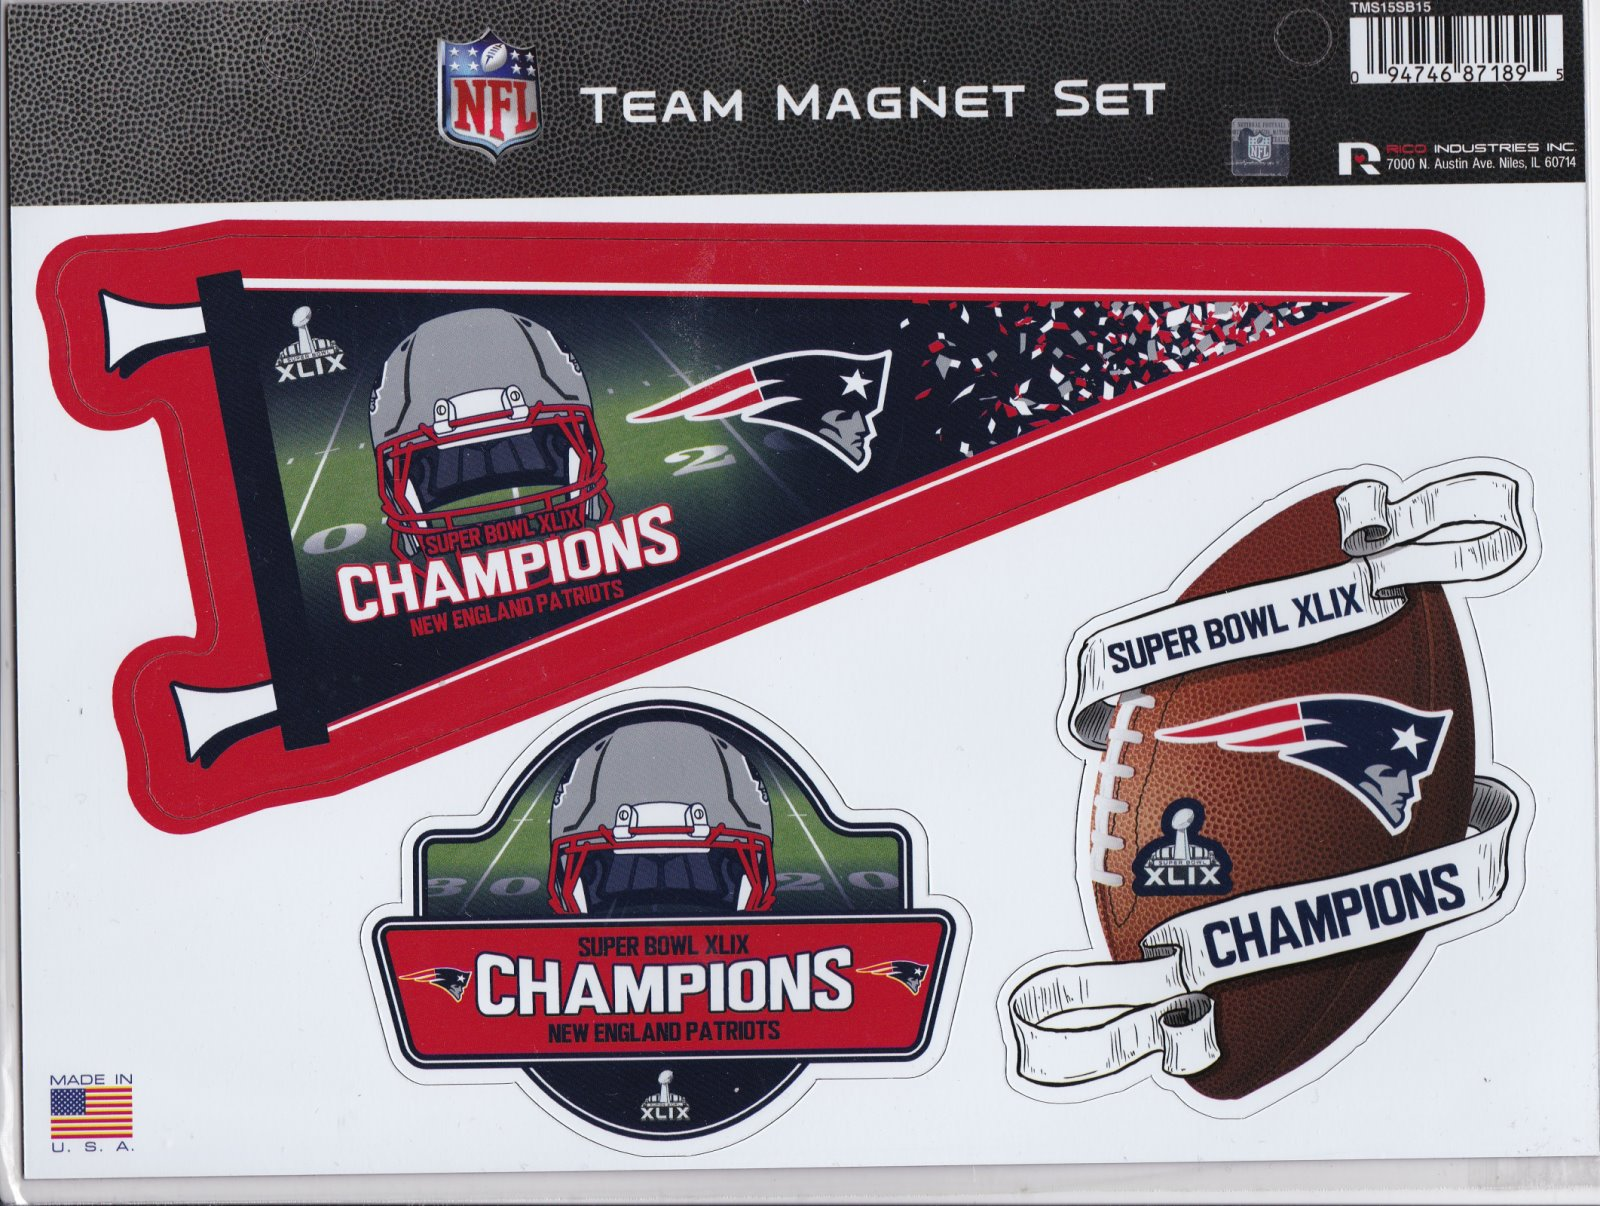 New England Patriots Super Bowl XLIX Champions Team Magnet Set